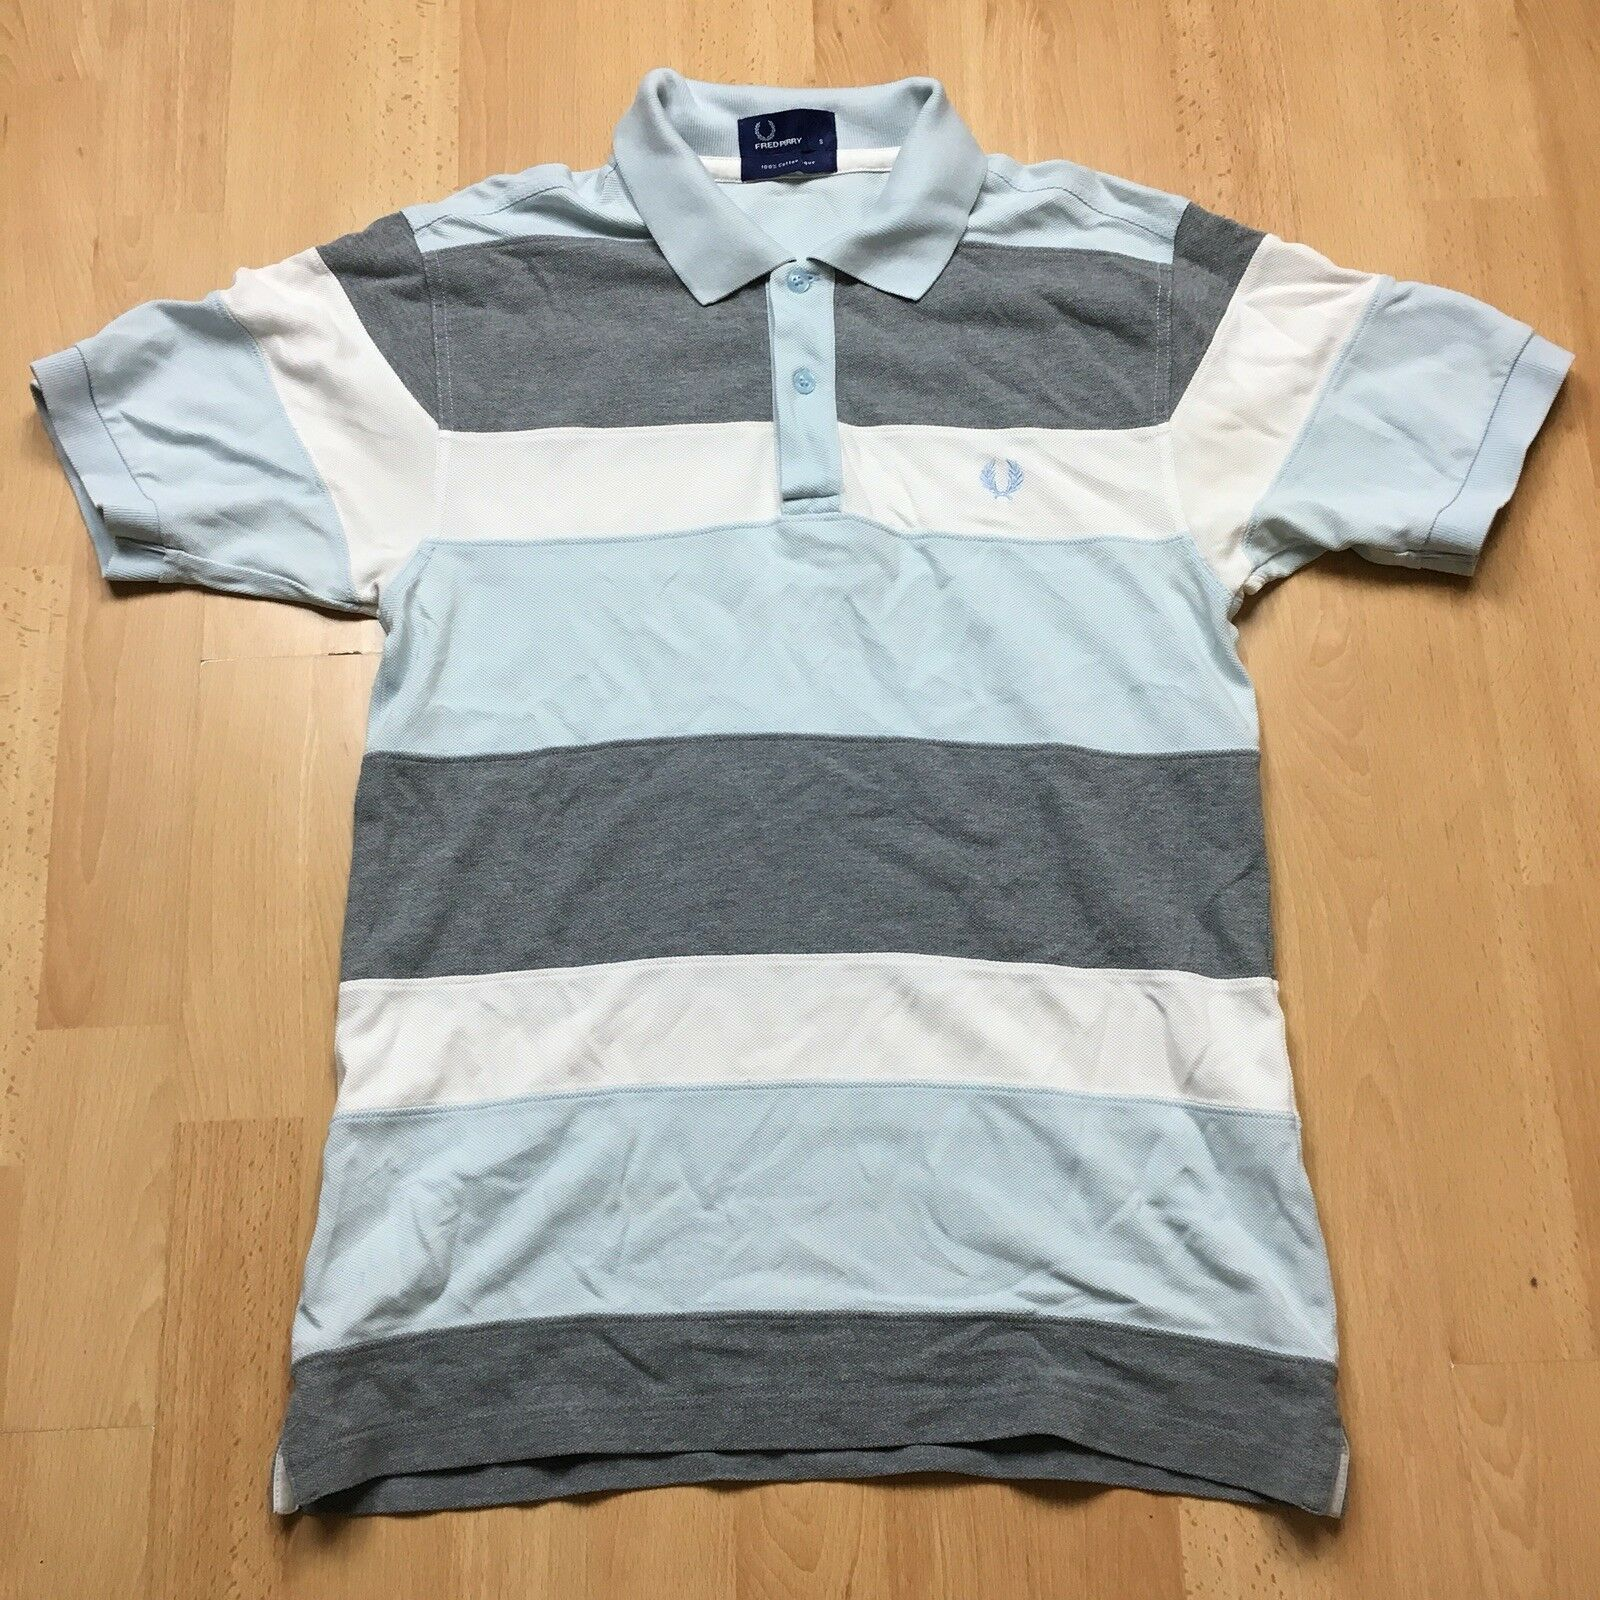 FRED PERRY MULTI STRIPE POLO T SHIRT blueE WHITE GREY SMALL